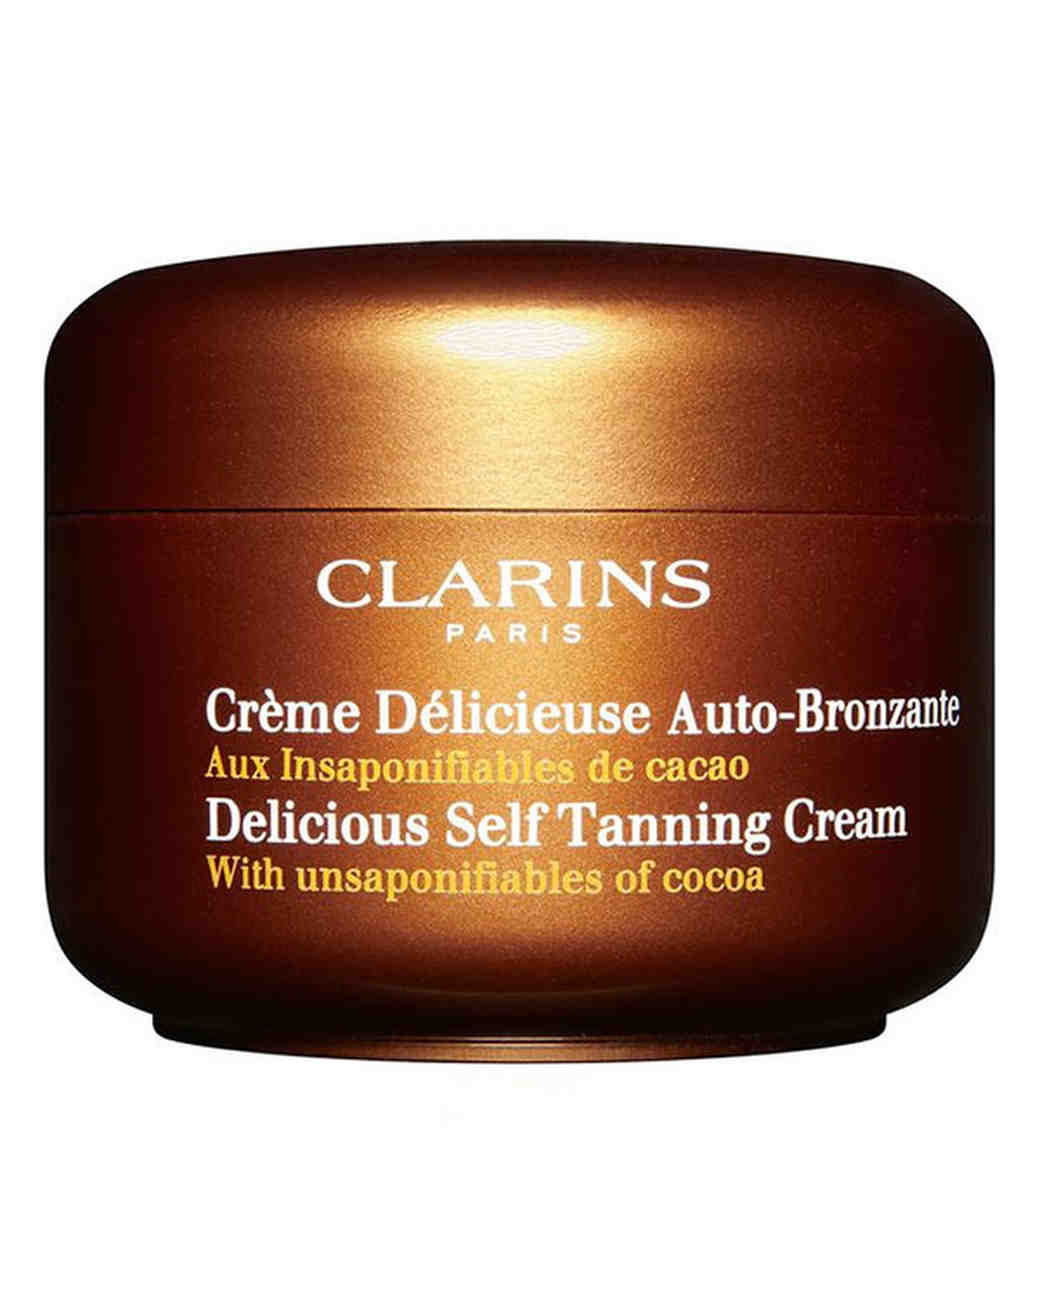 best-self-tanners-clarins-delicious-cream-0615.jpg